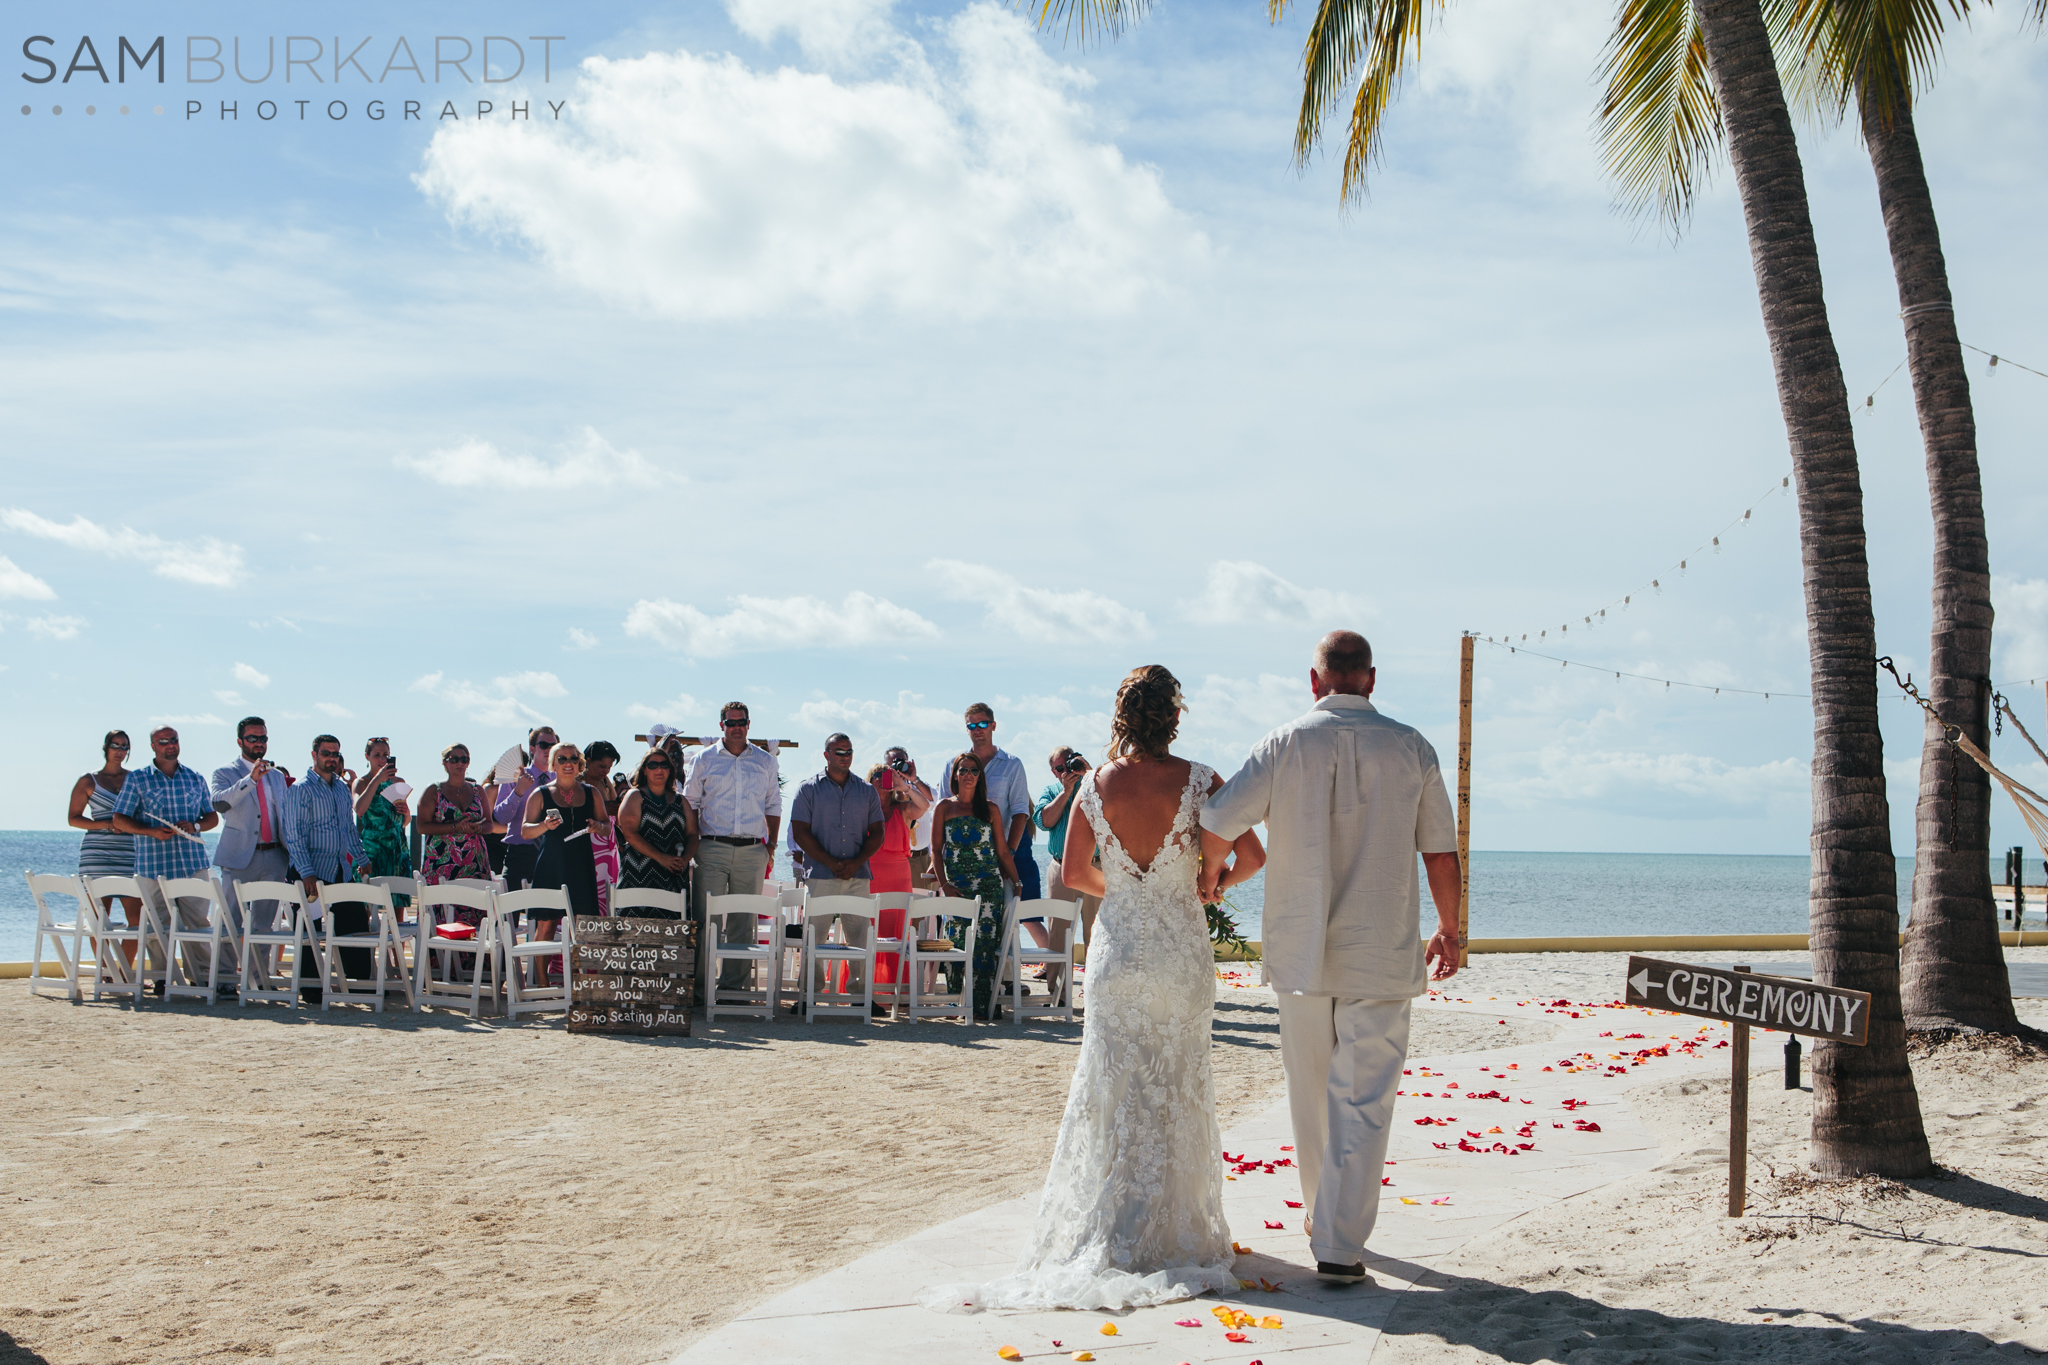 samburkardt_key_west_wedding_marathon_florida_summer_beach_ocean_front_0027.jpg